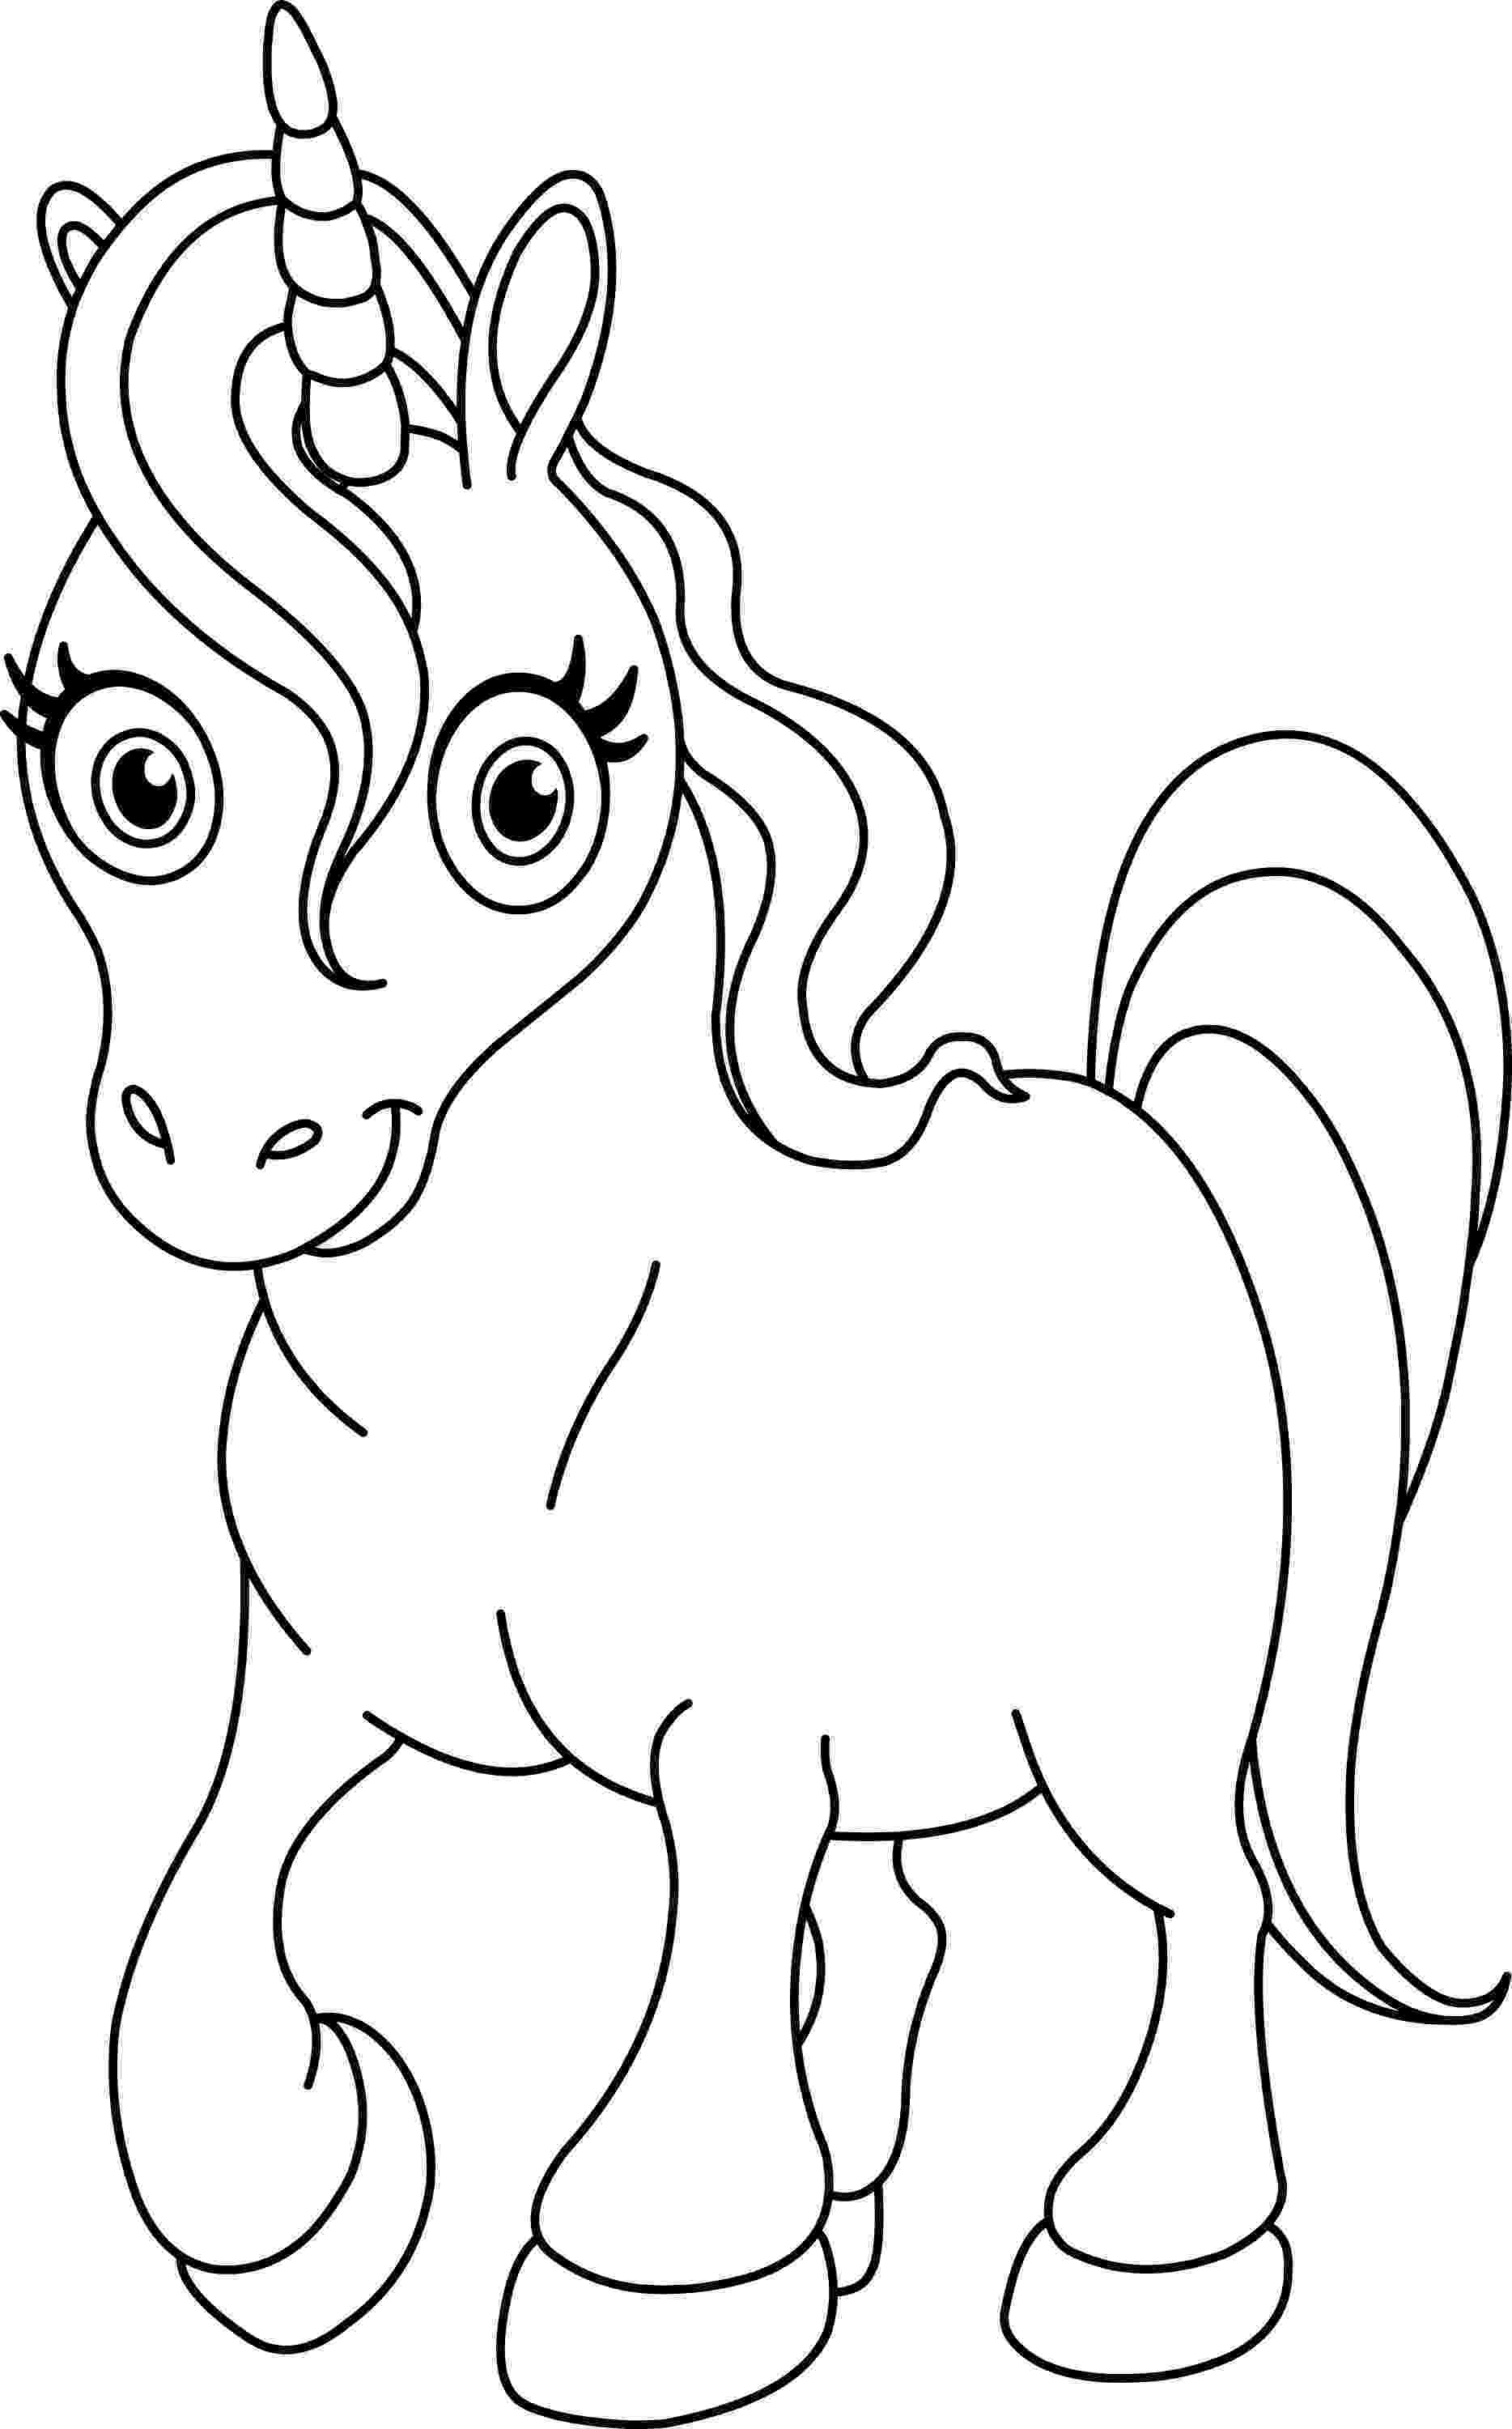 unicorn printable coloring pages zizzle zazzle lineart by yampuff on deviantart unicorn unicorn printable pages coloring